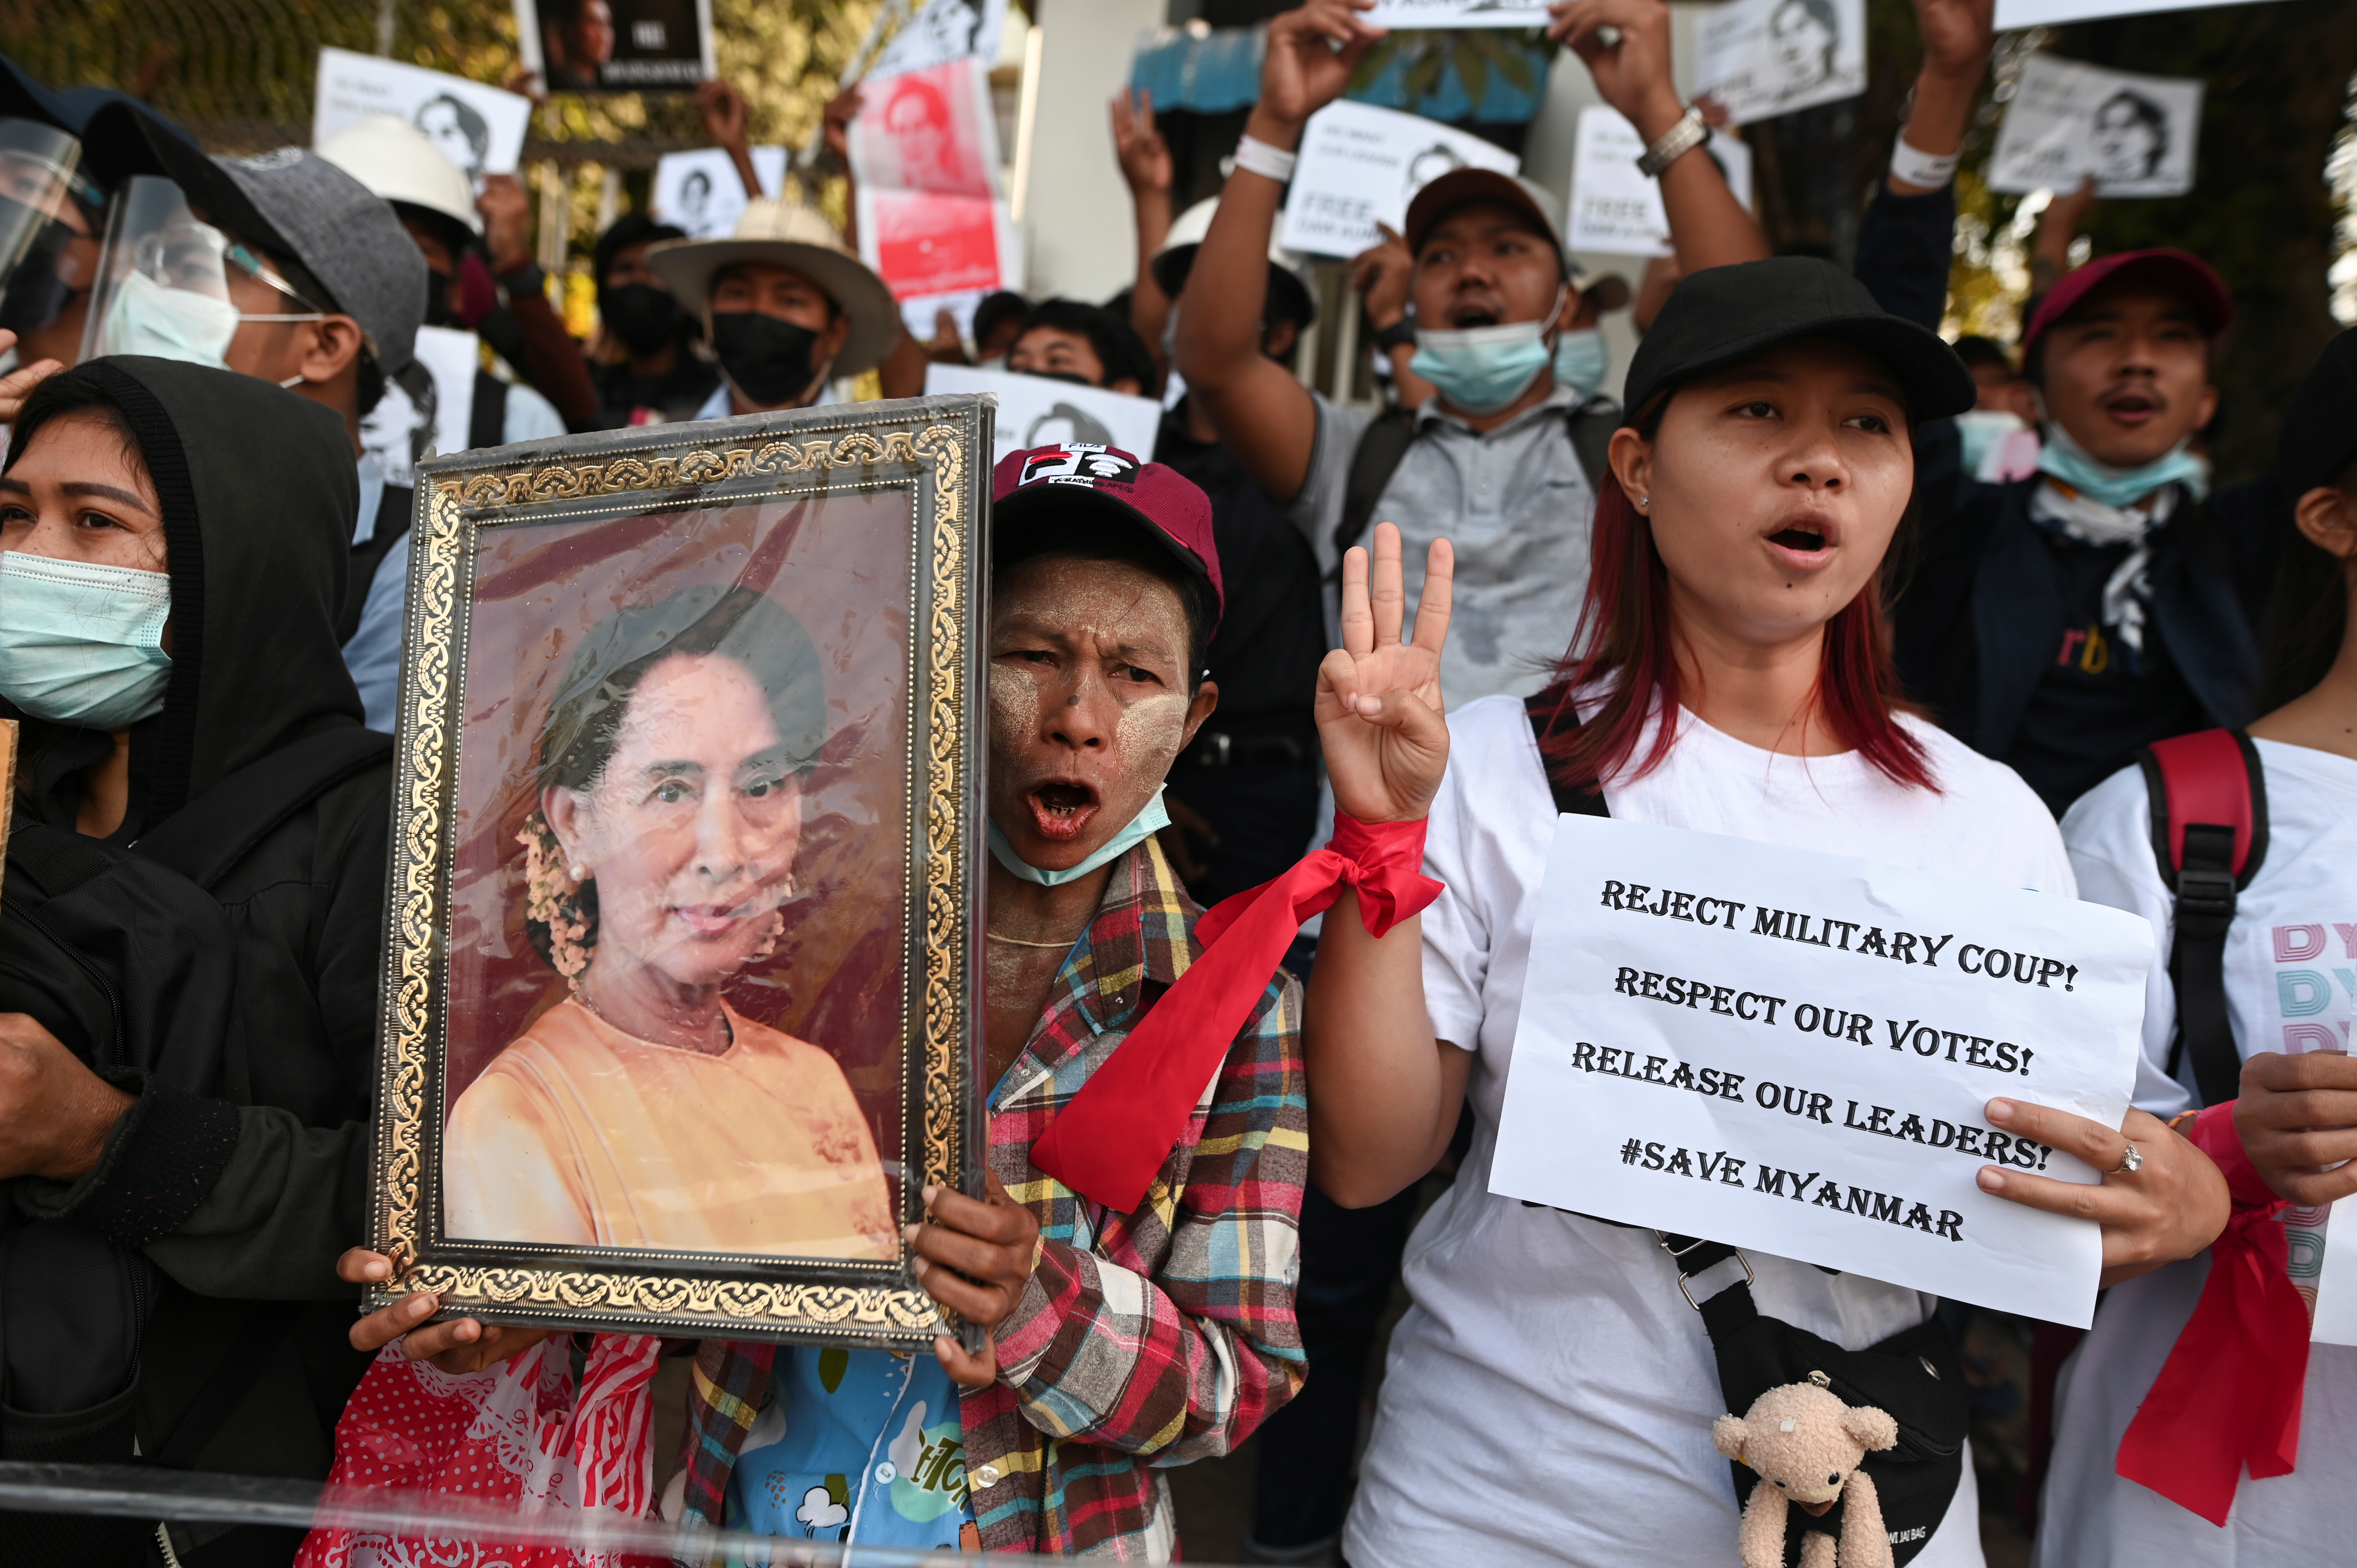 To understand post-coup Myanmar, look to its history of popular resistance — not sanctions